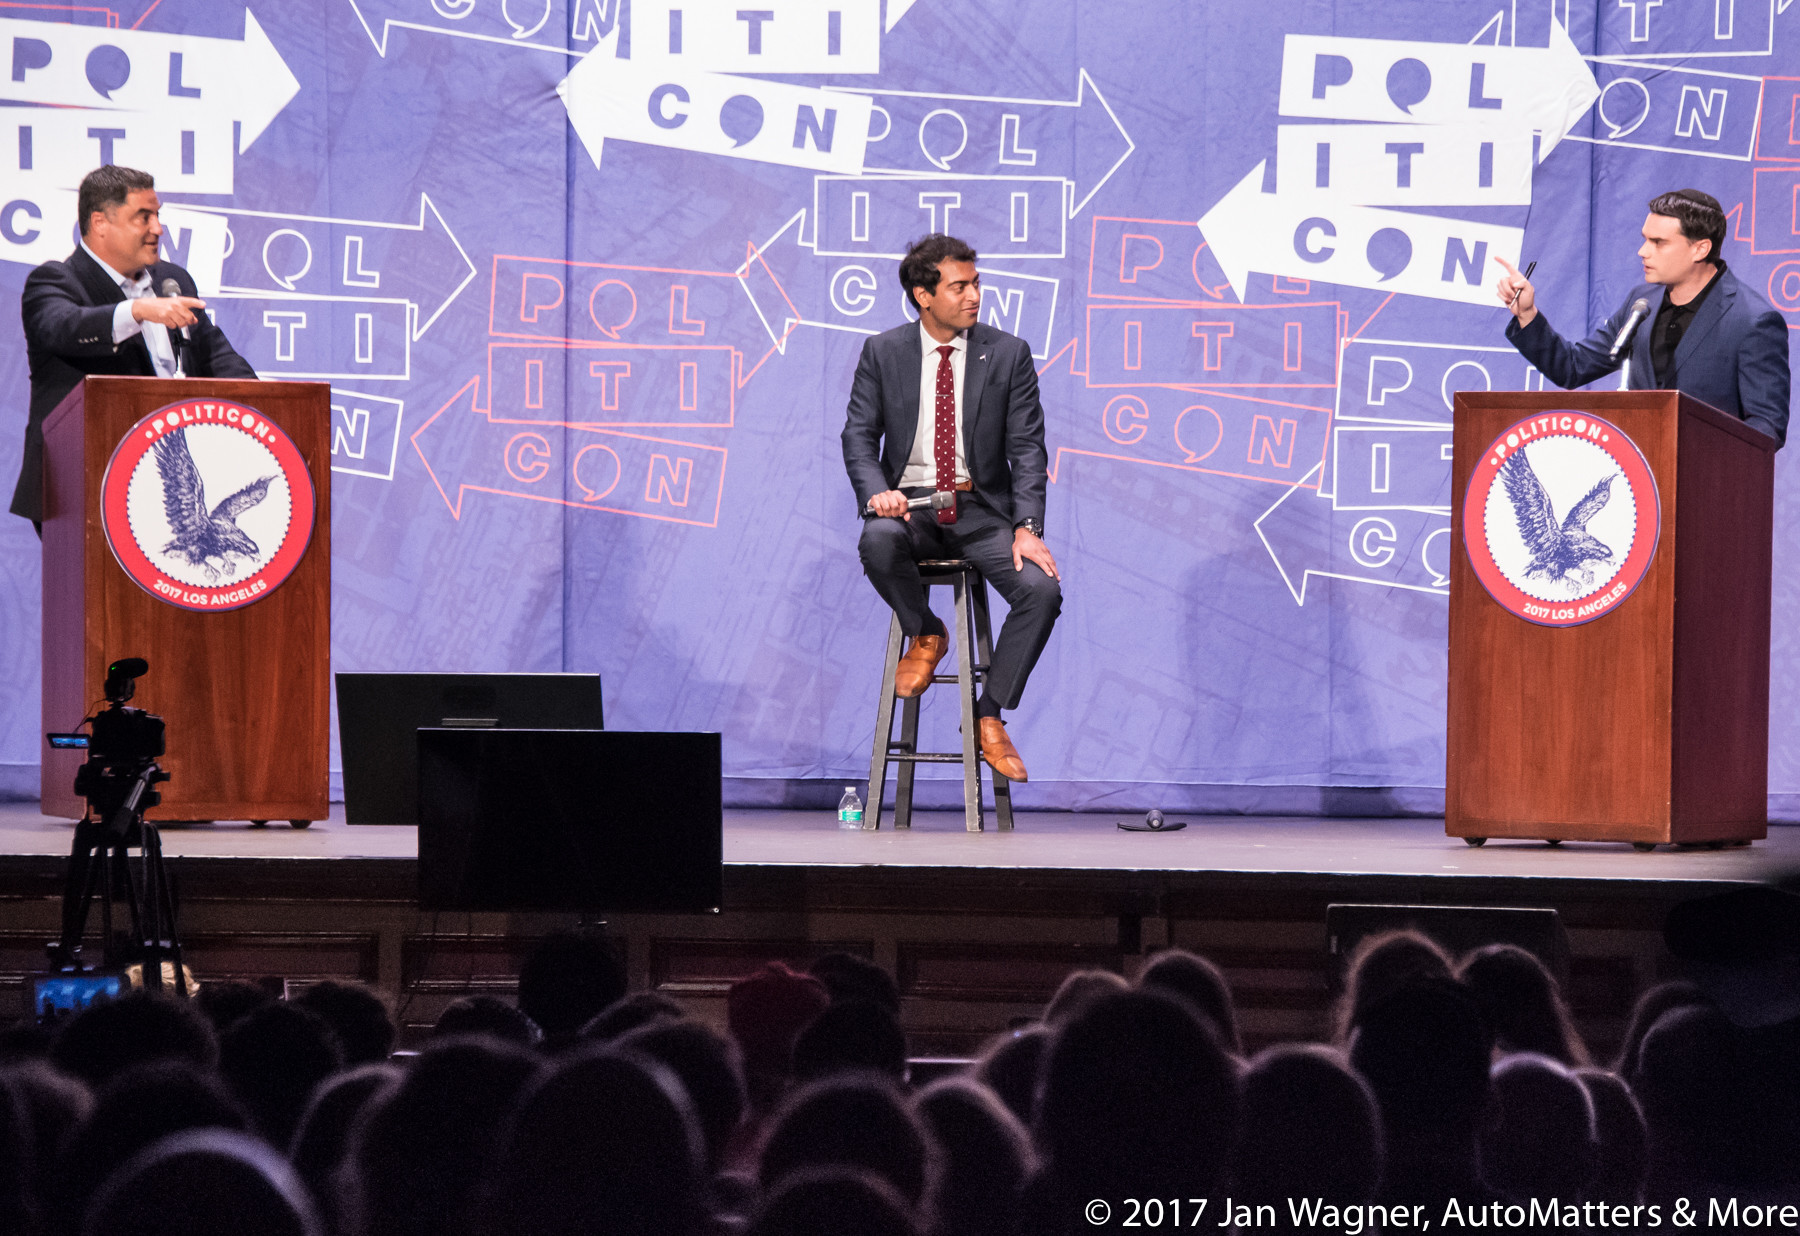 Heated debate between progessive Cenk Uygur, founder of the Young Turks, and conservative Ben Shapiro.